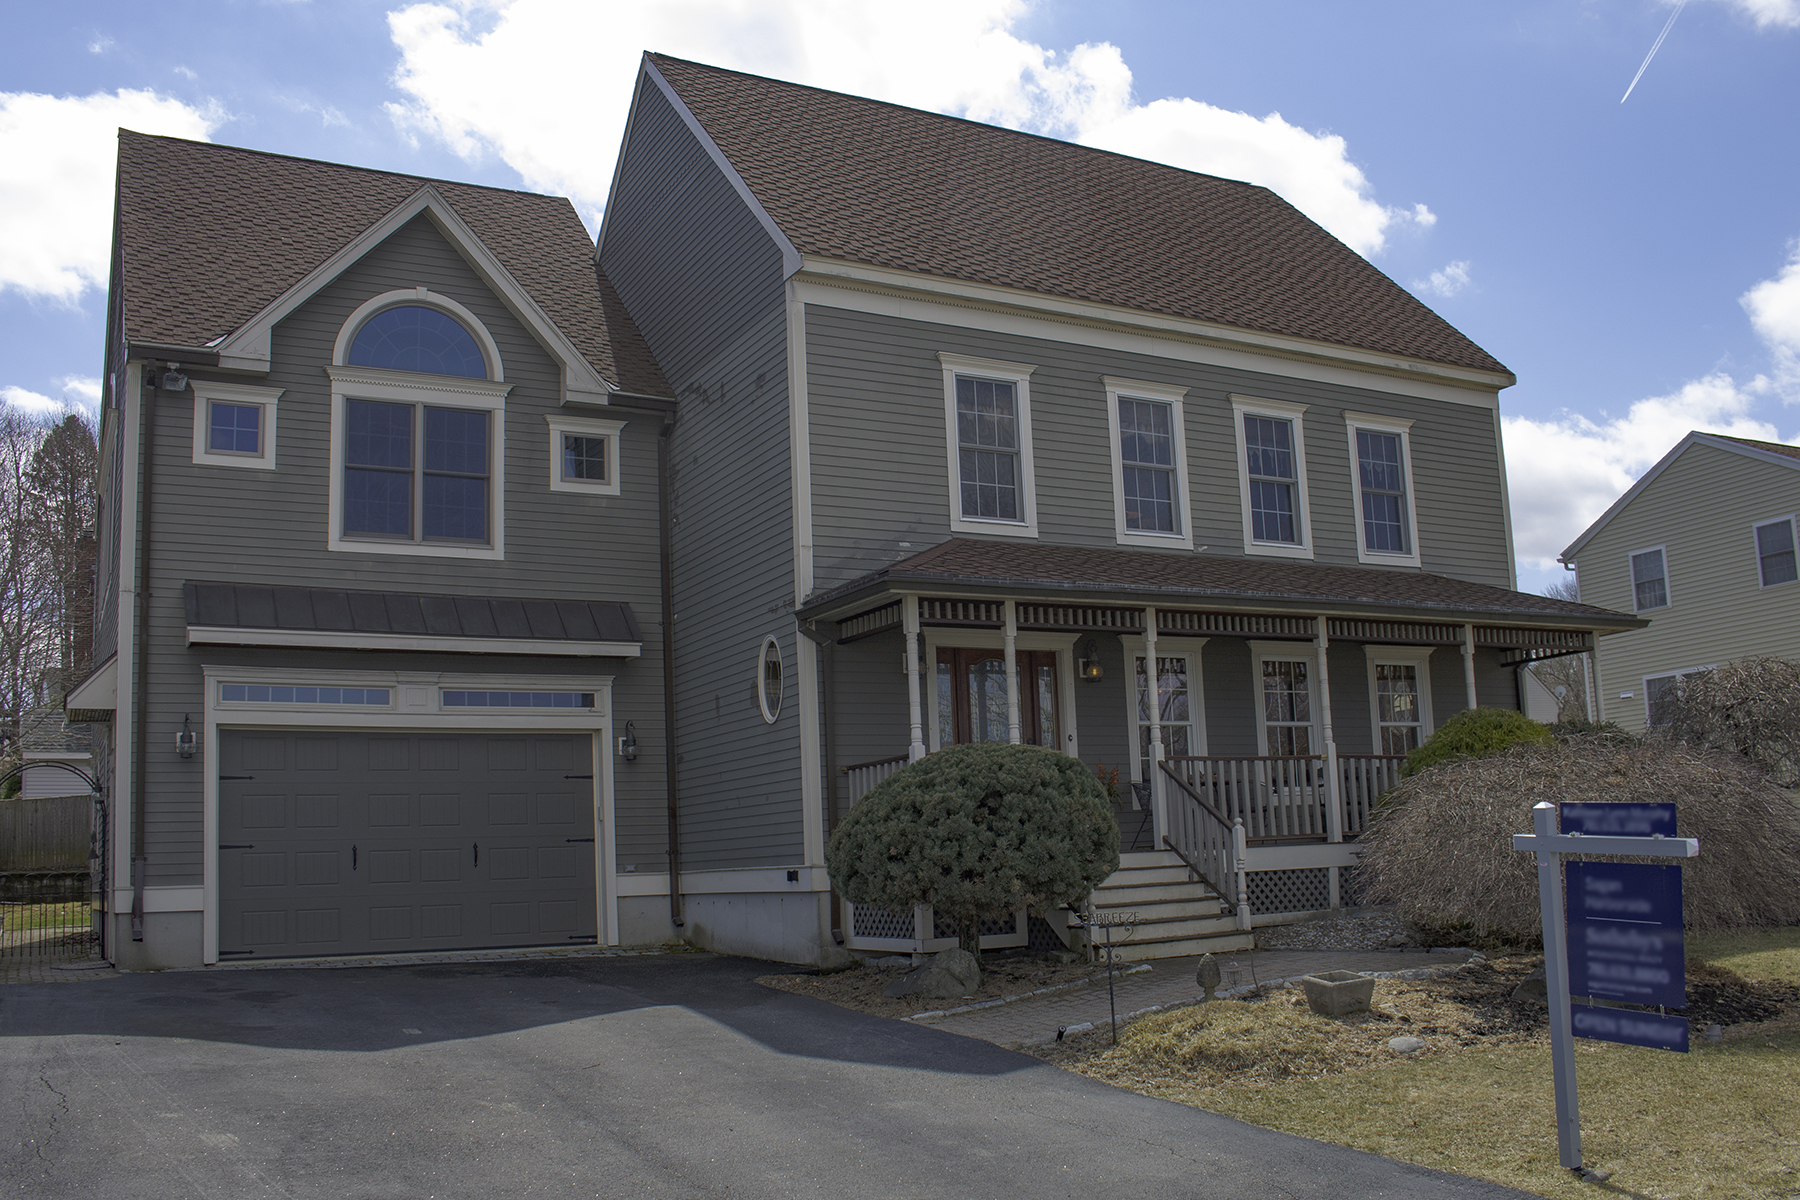 Single Family Home for Active at Colonial with lots of flair! 14 Westview circle Peabody, Massachusetts 01960 United States